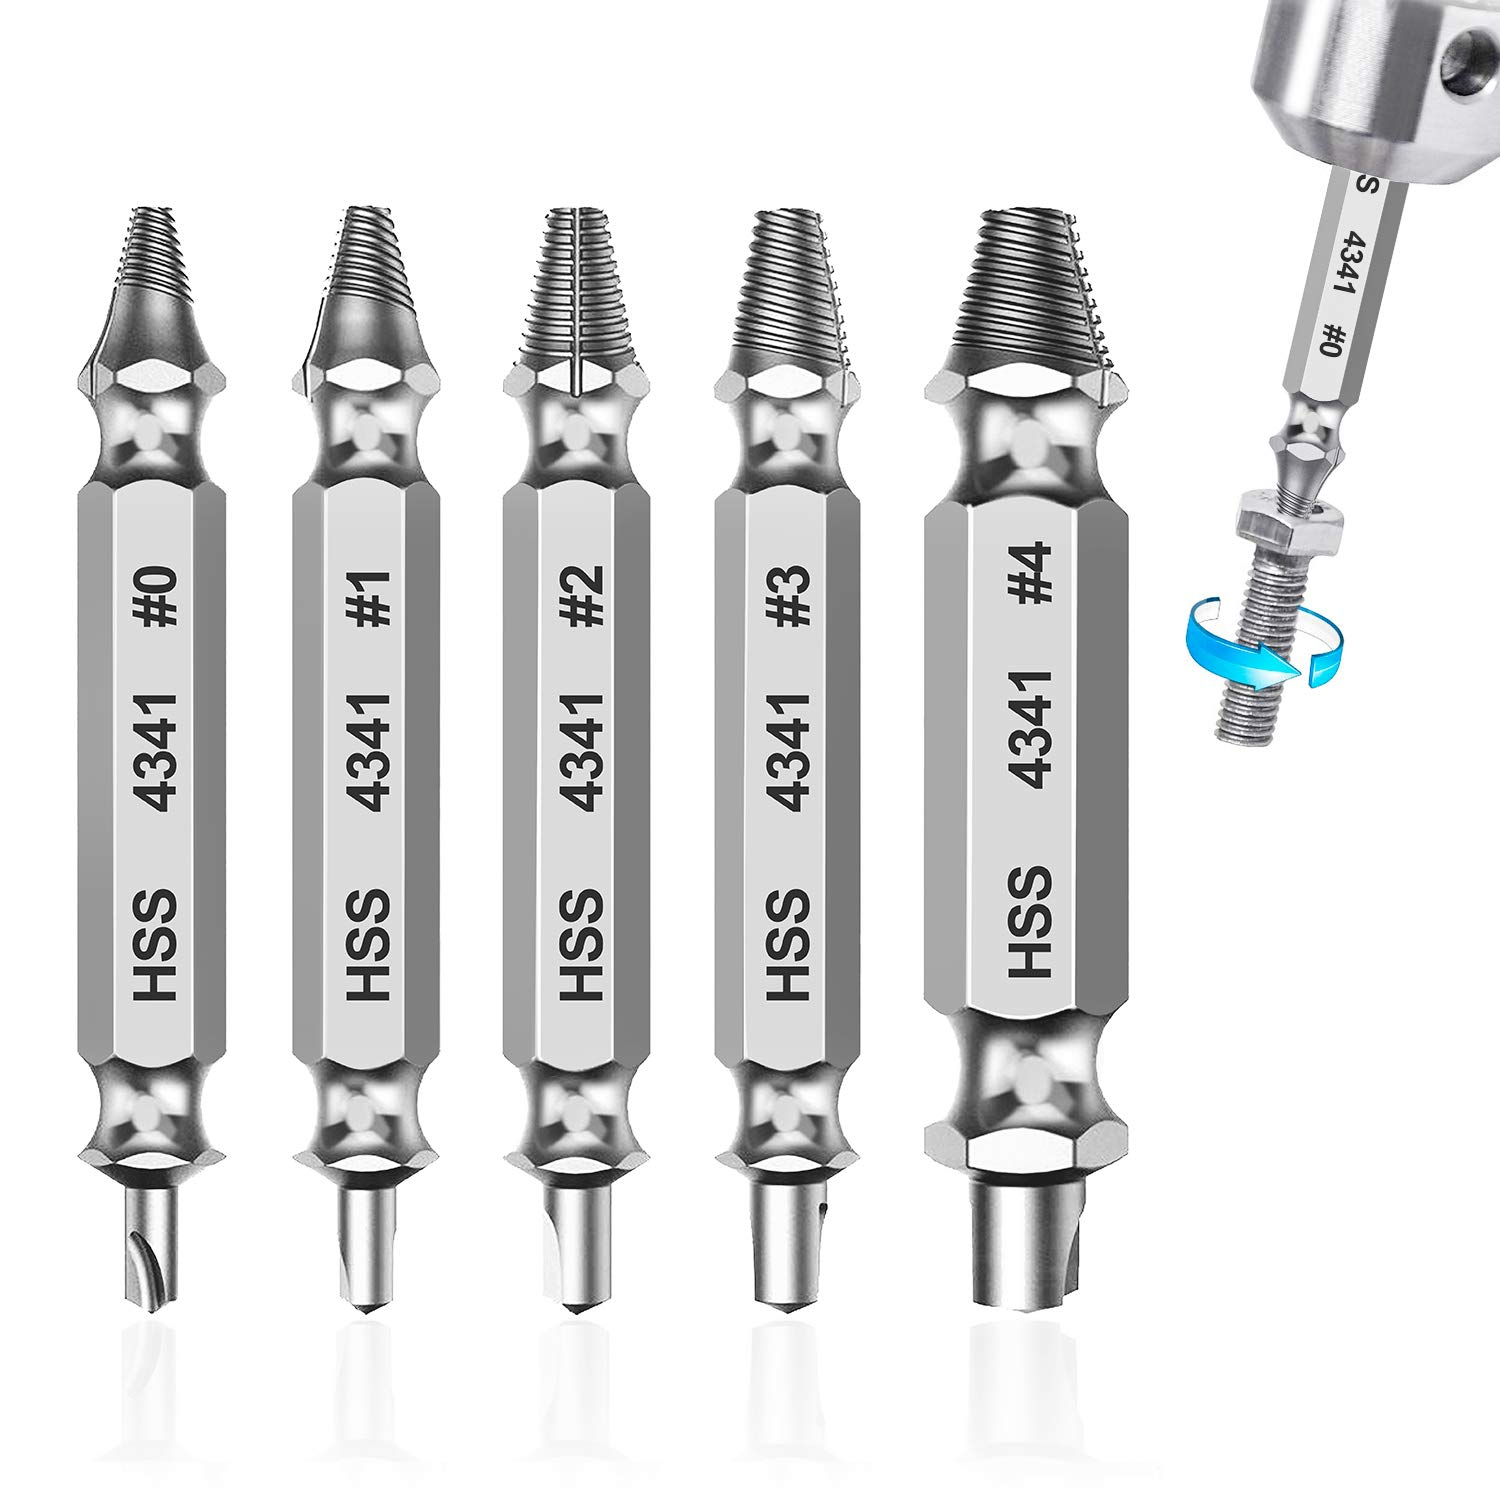 Screw Extractor and Remove Set of 5 PCS Easily Remove Damaged Screw